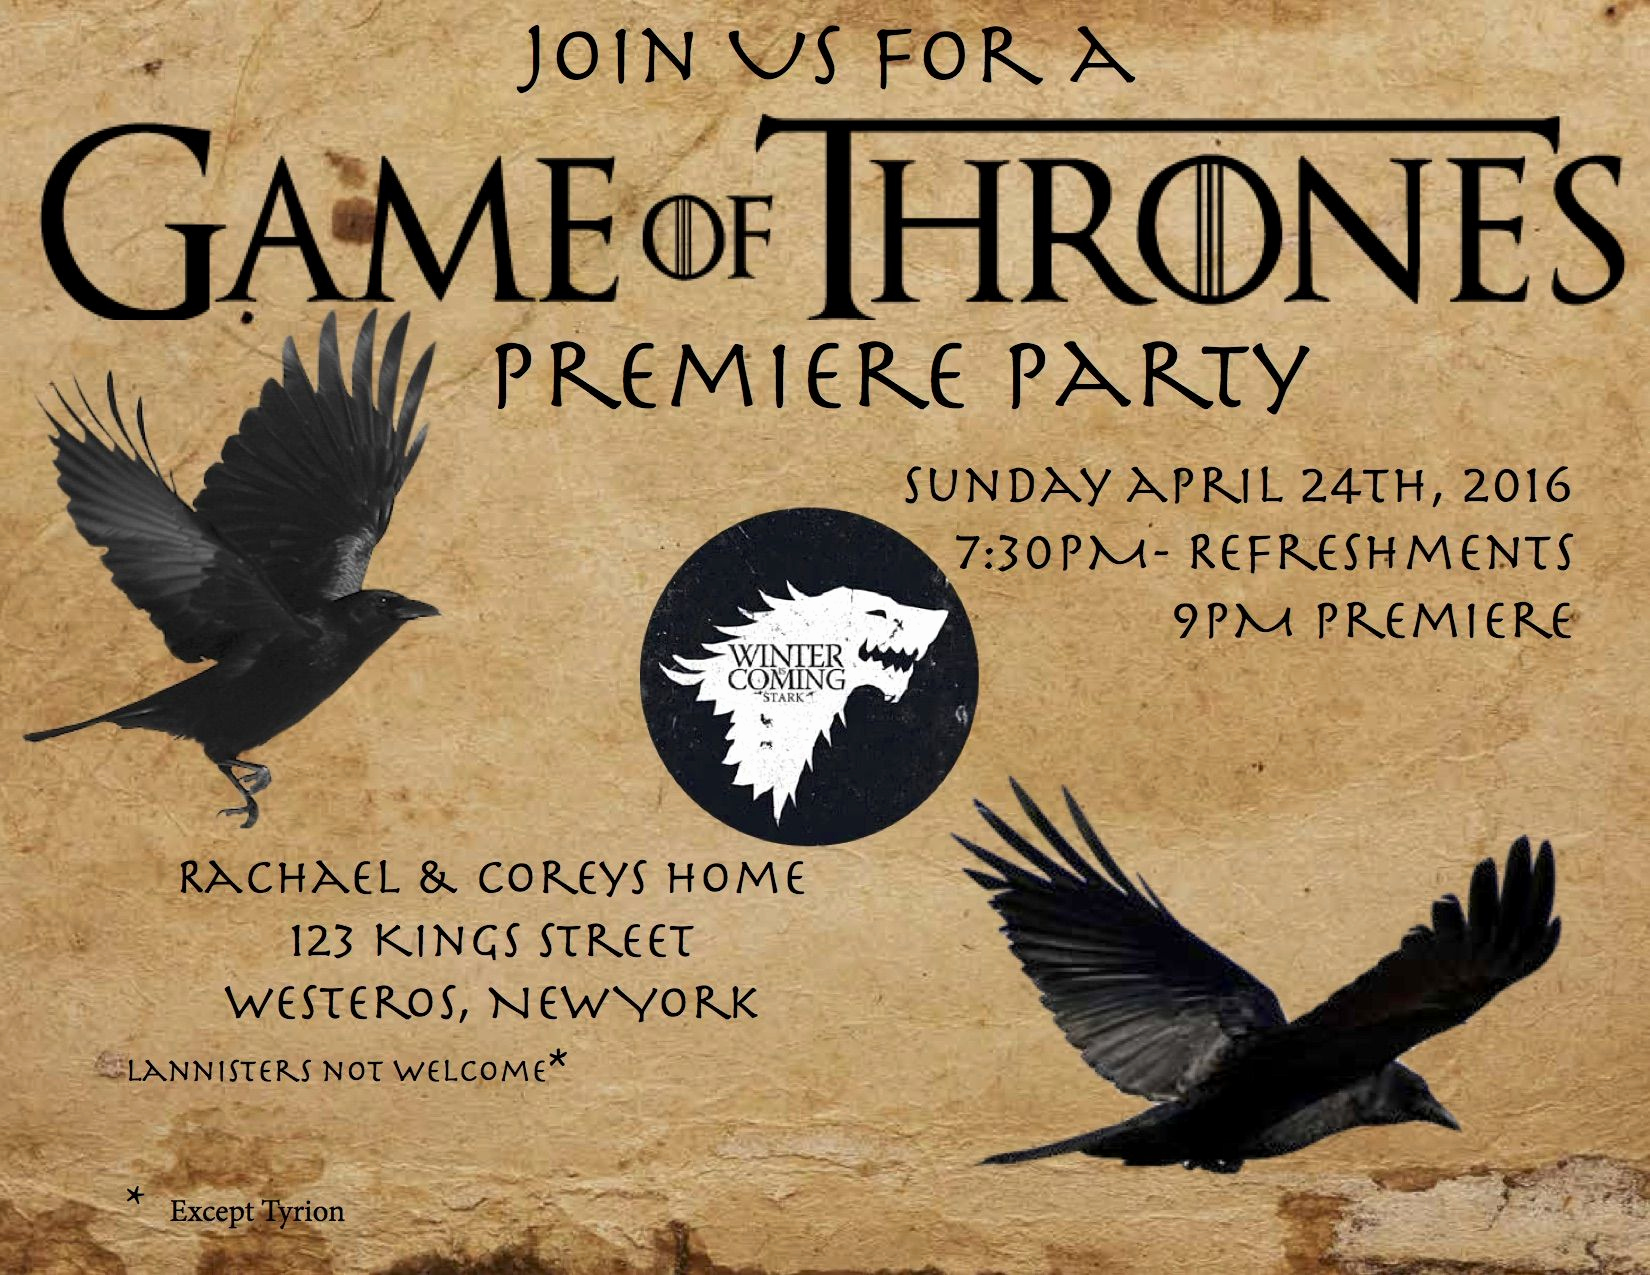 Game Of Thrones Party Invitation Inspirational Game Of Thrones Premiere Party Invitation Inspiration I